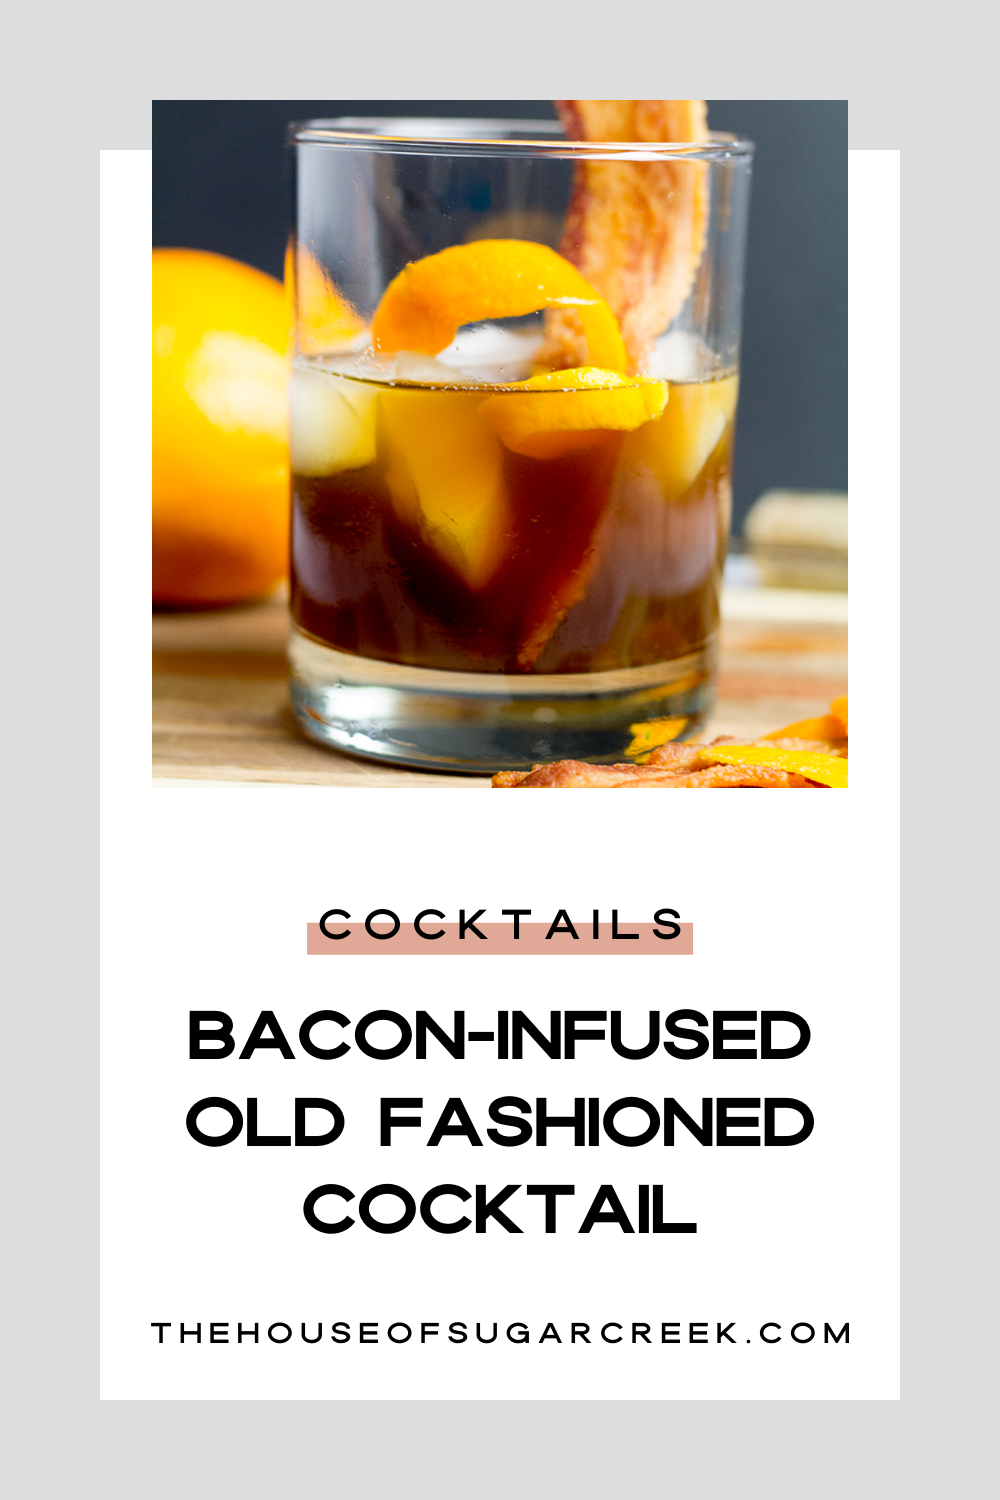 Bacon-Infused Old Fashioned Cocktail for Petit Jean Meats